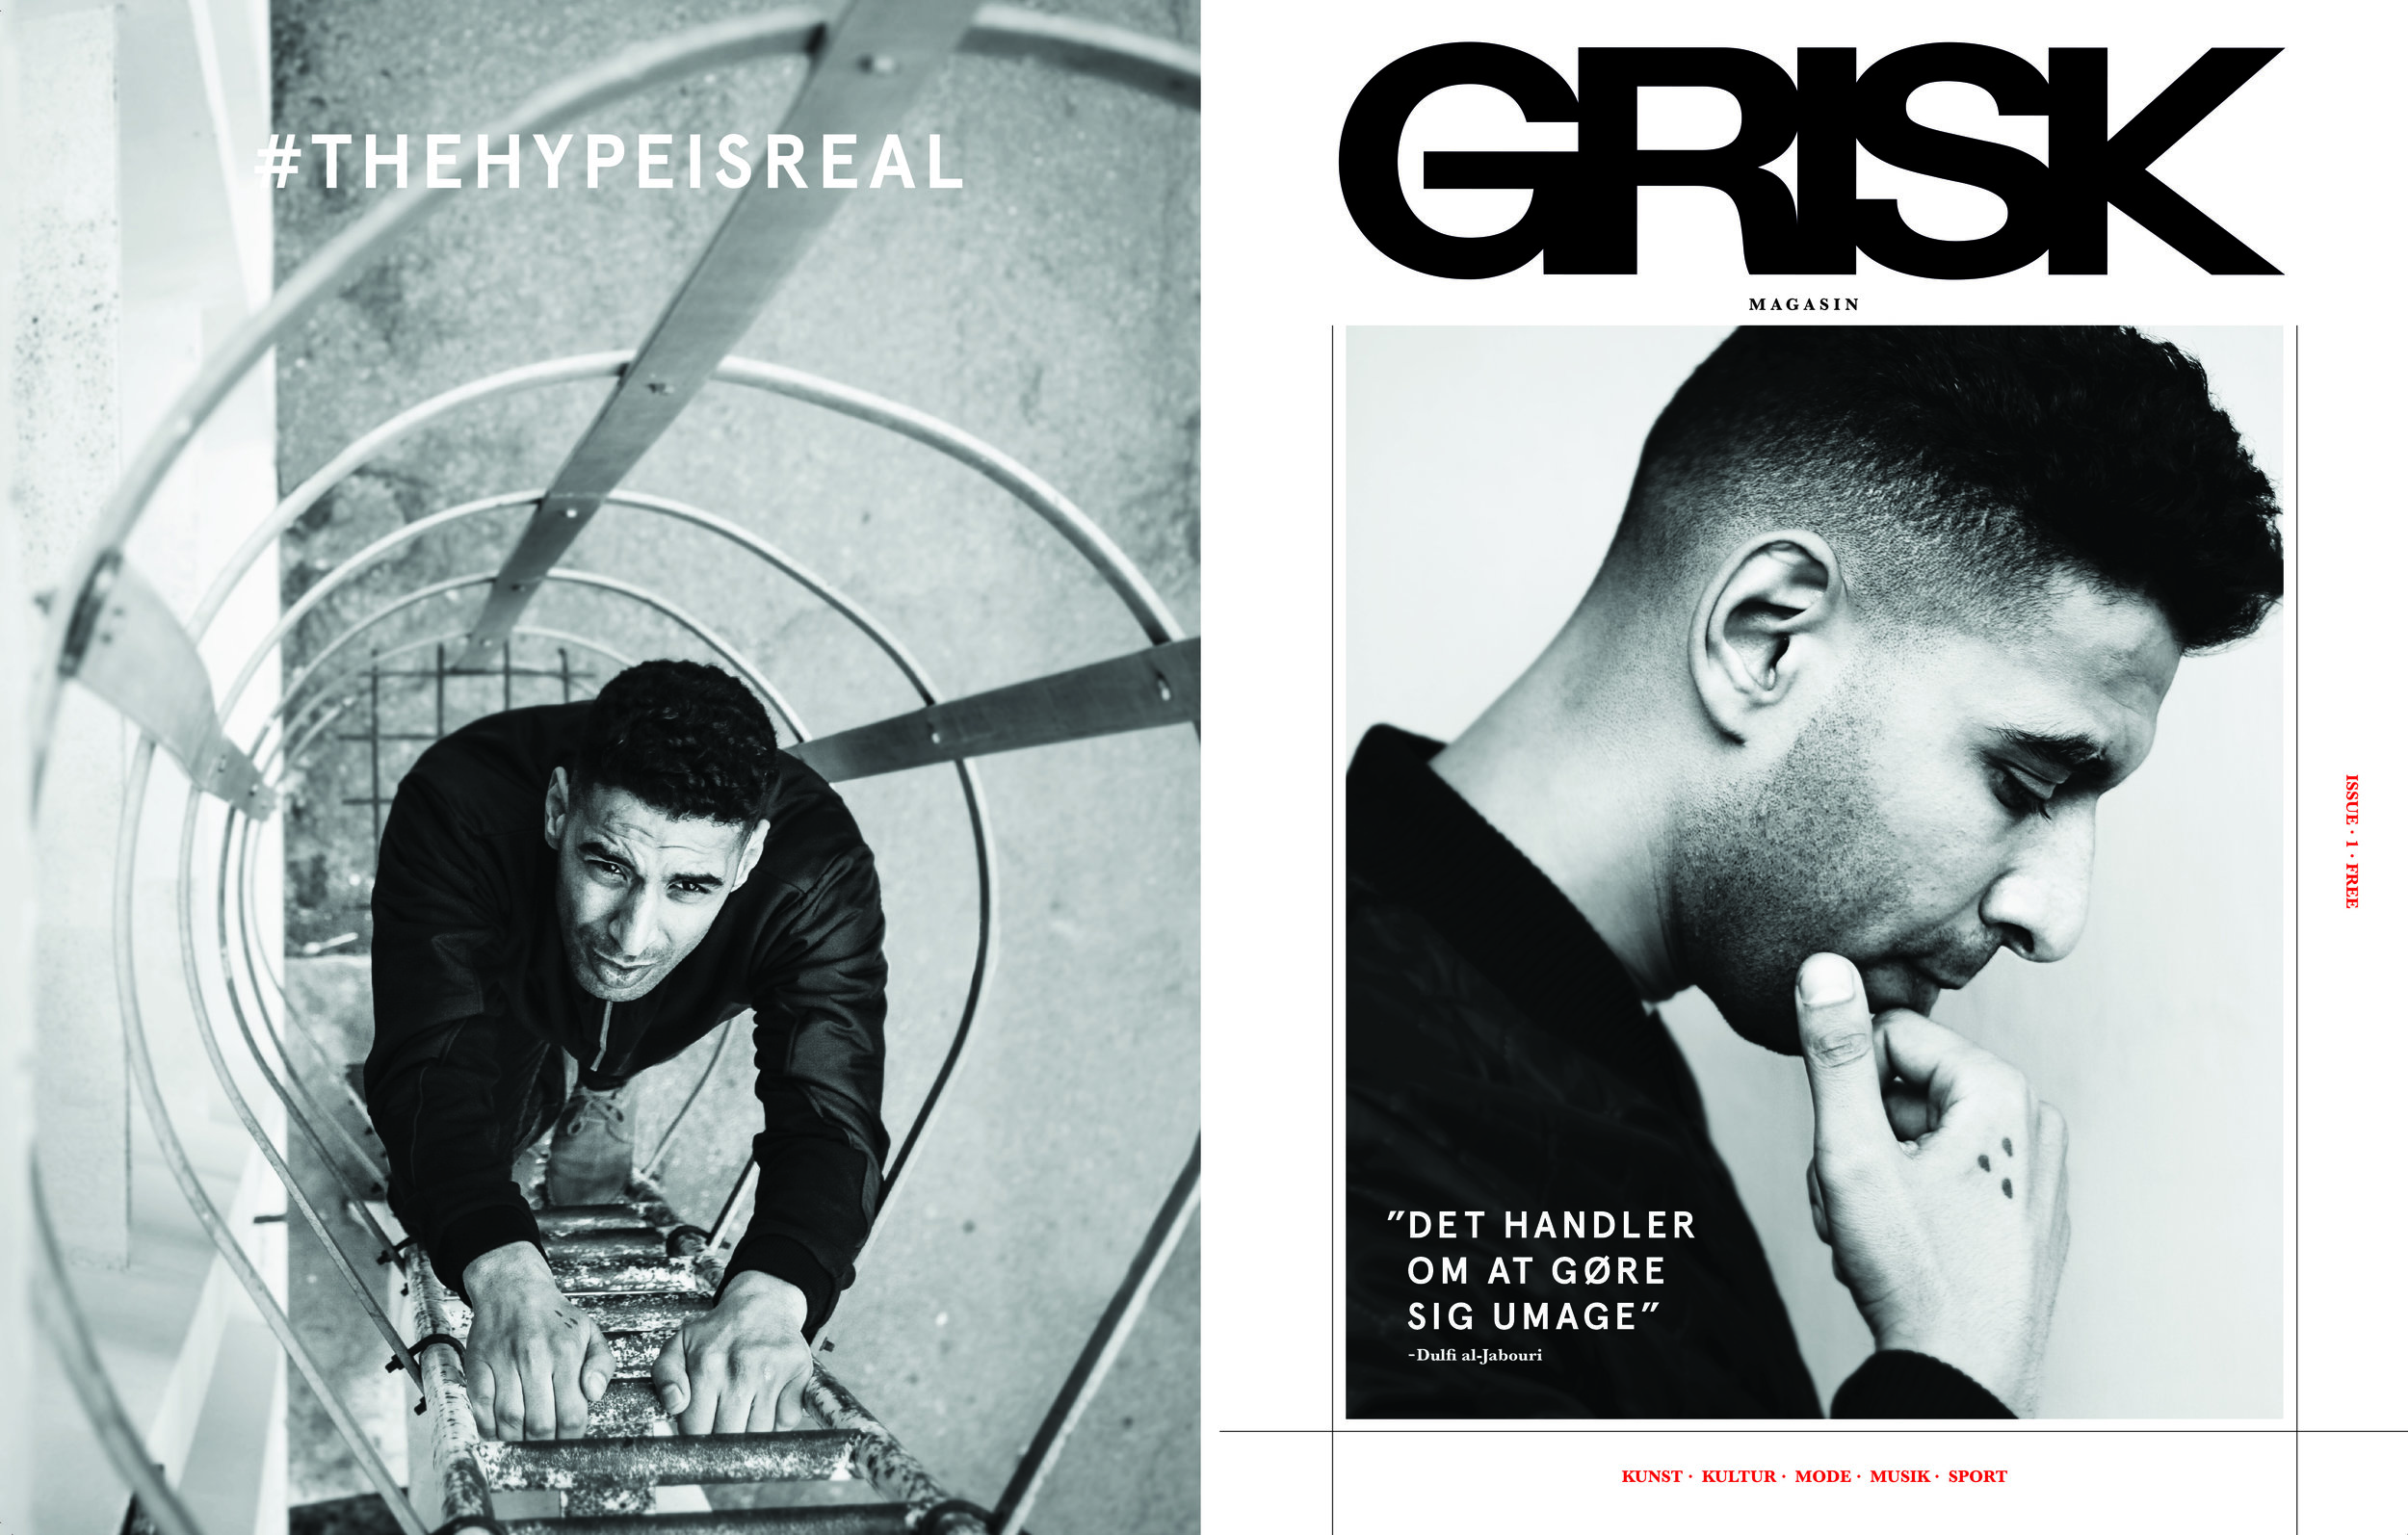 Grisk_Magasin_issue1_Cover_Final-1.jpg